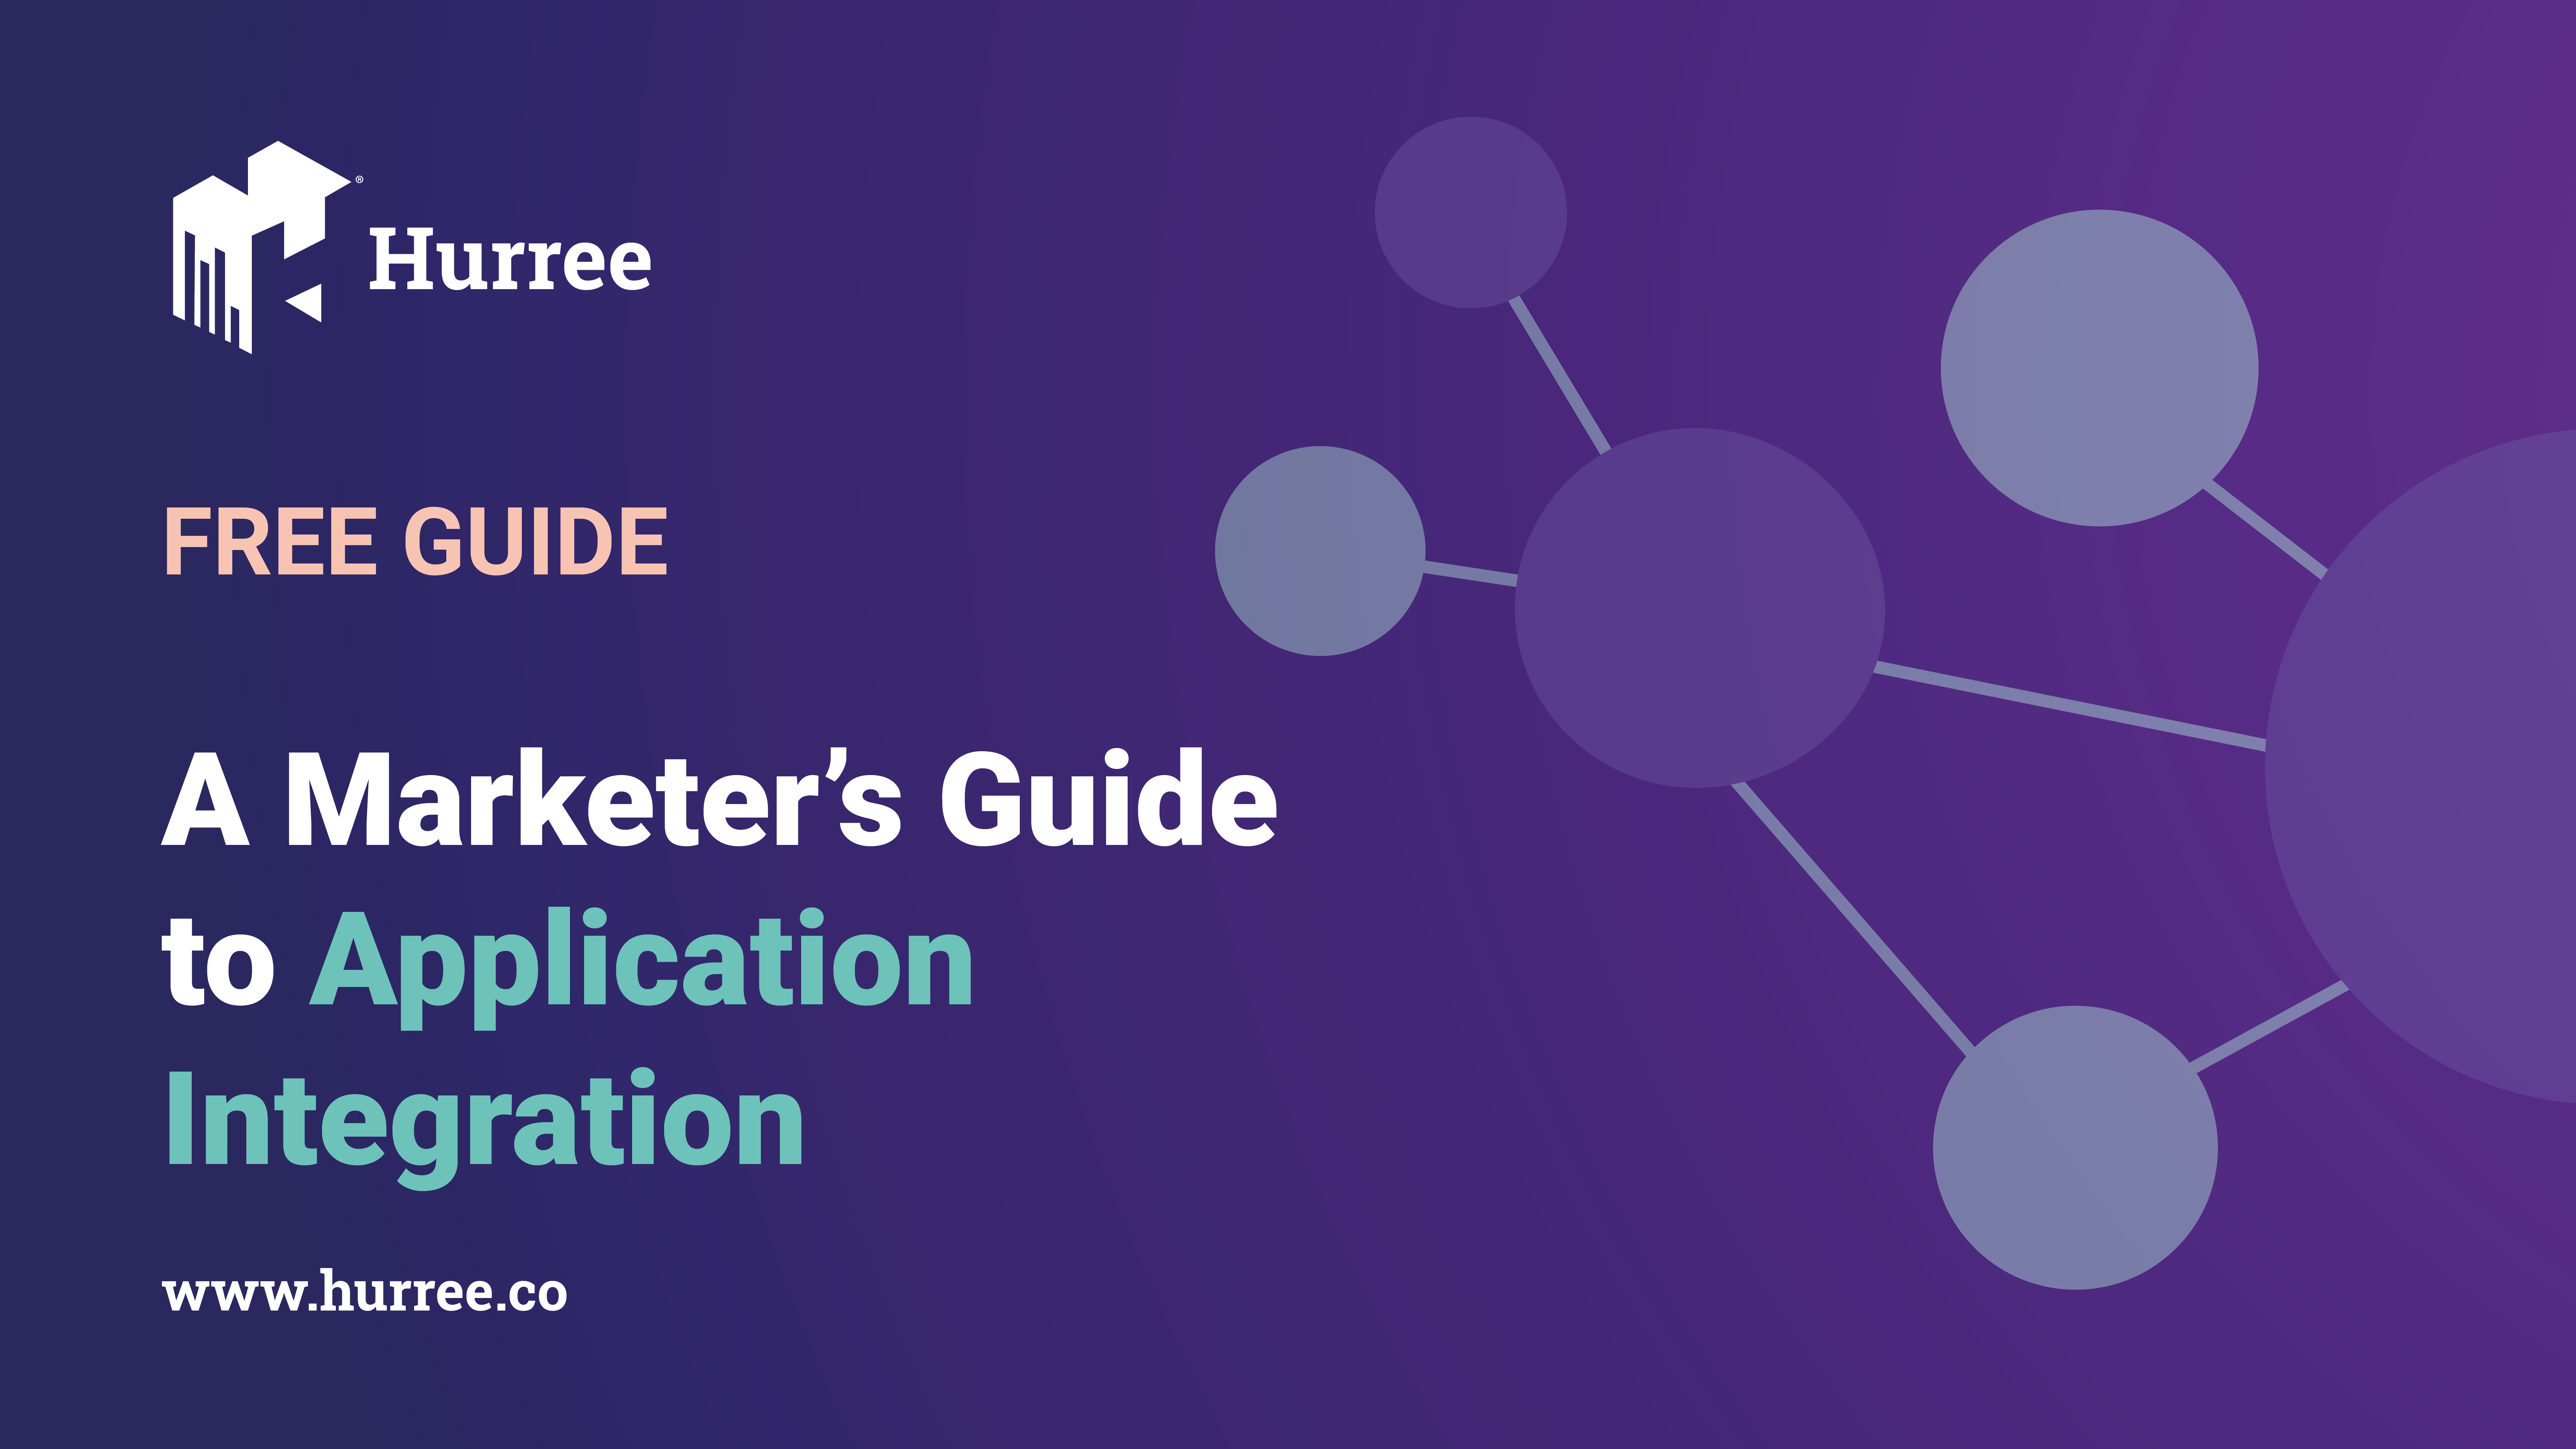 A Marketer's Guide to Application Integration